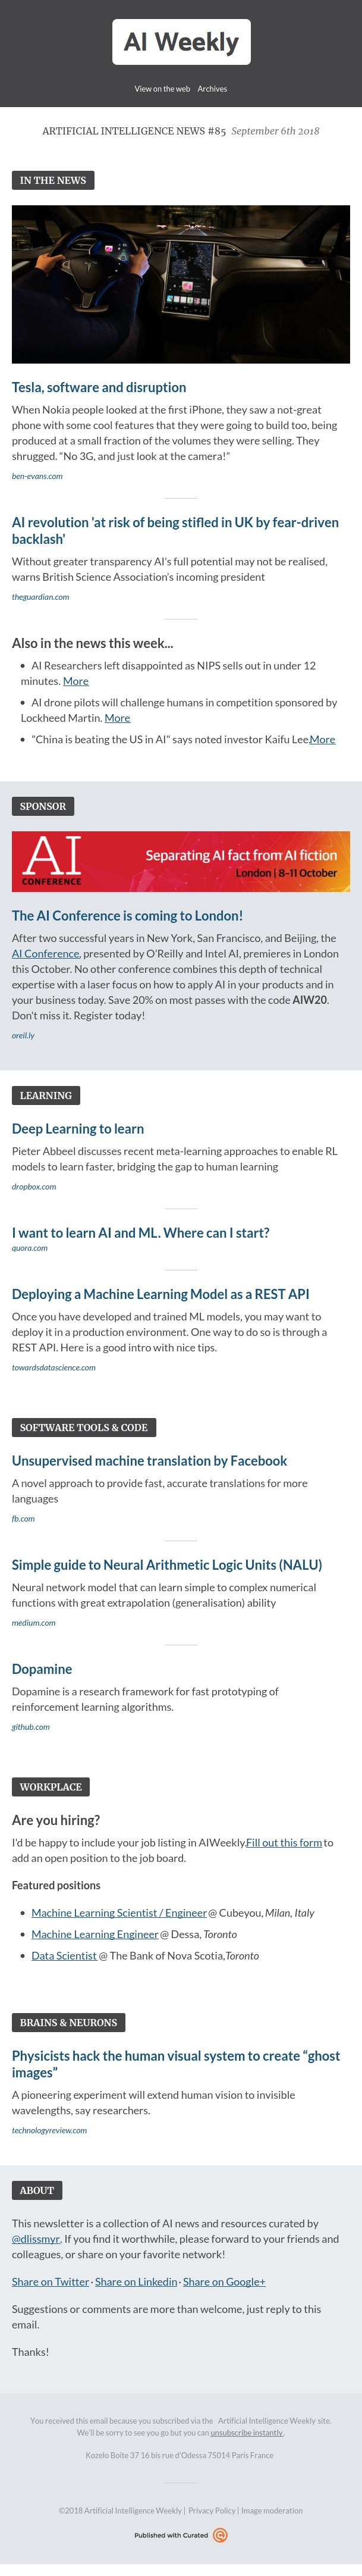 Artificial Intelligence Weekly - Artificial Intelligence News #85